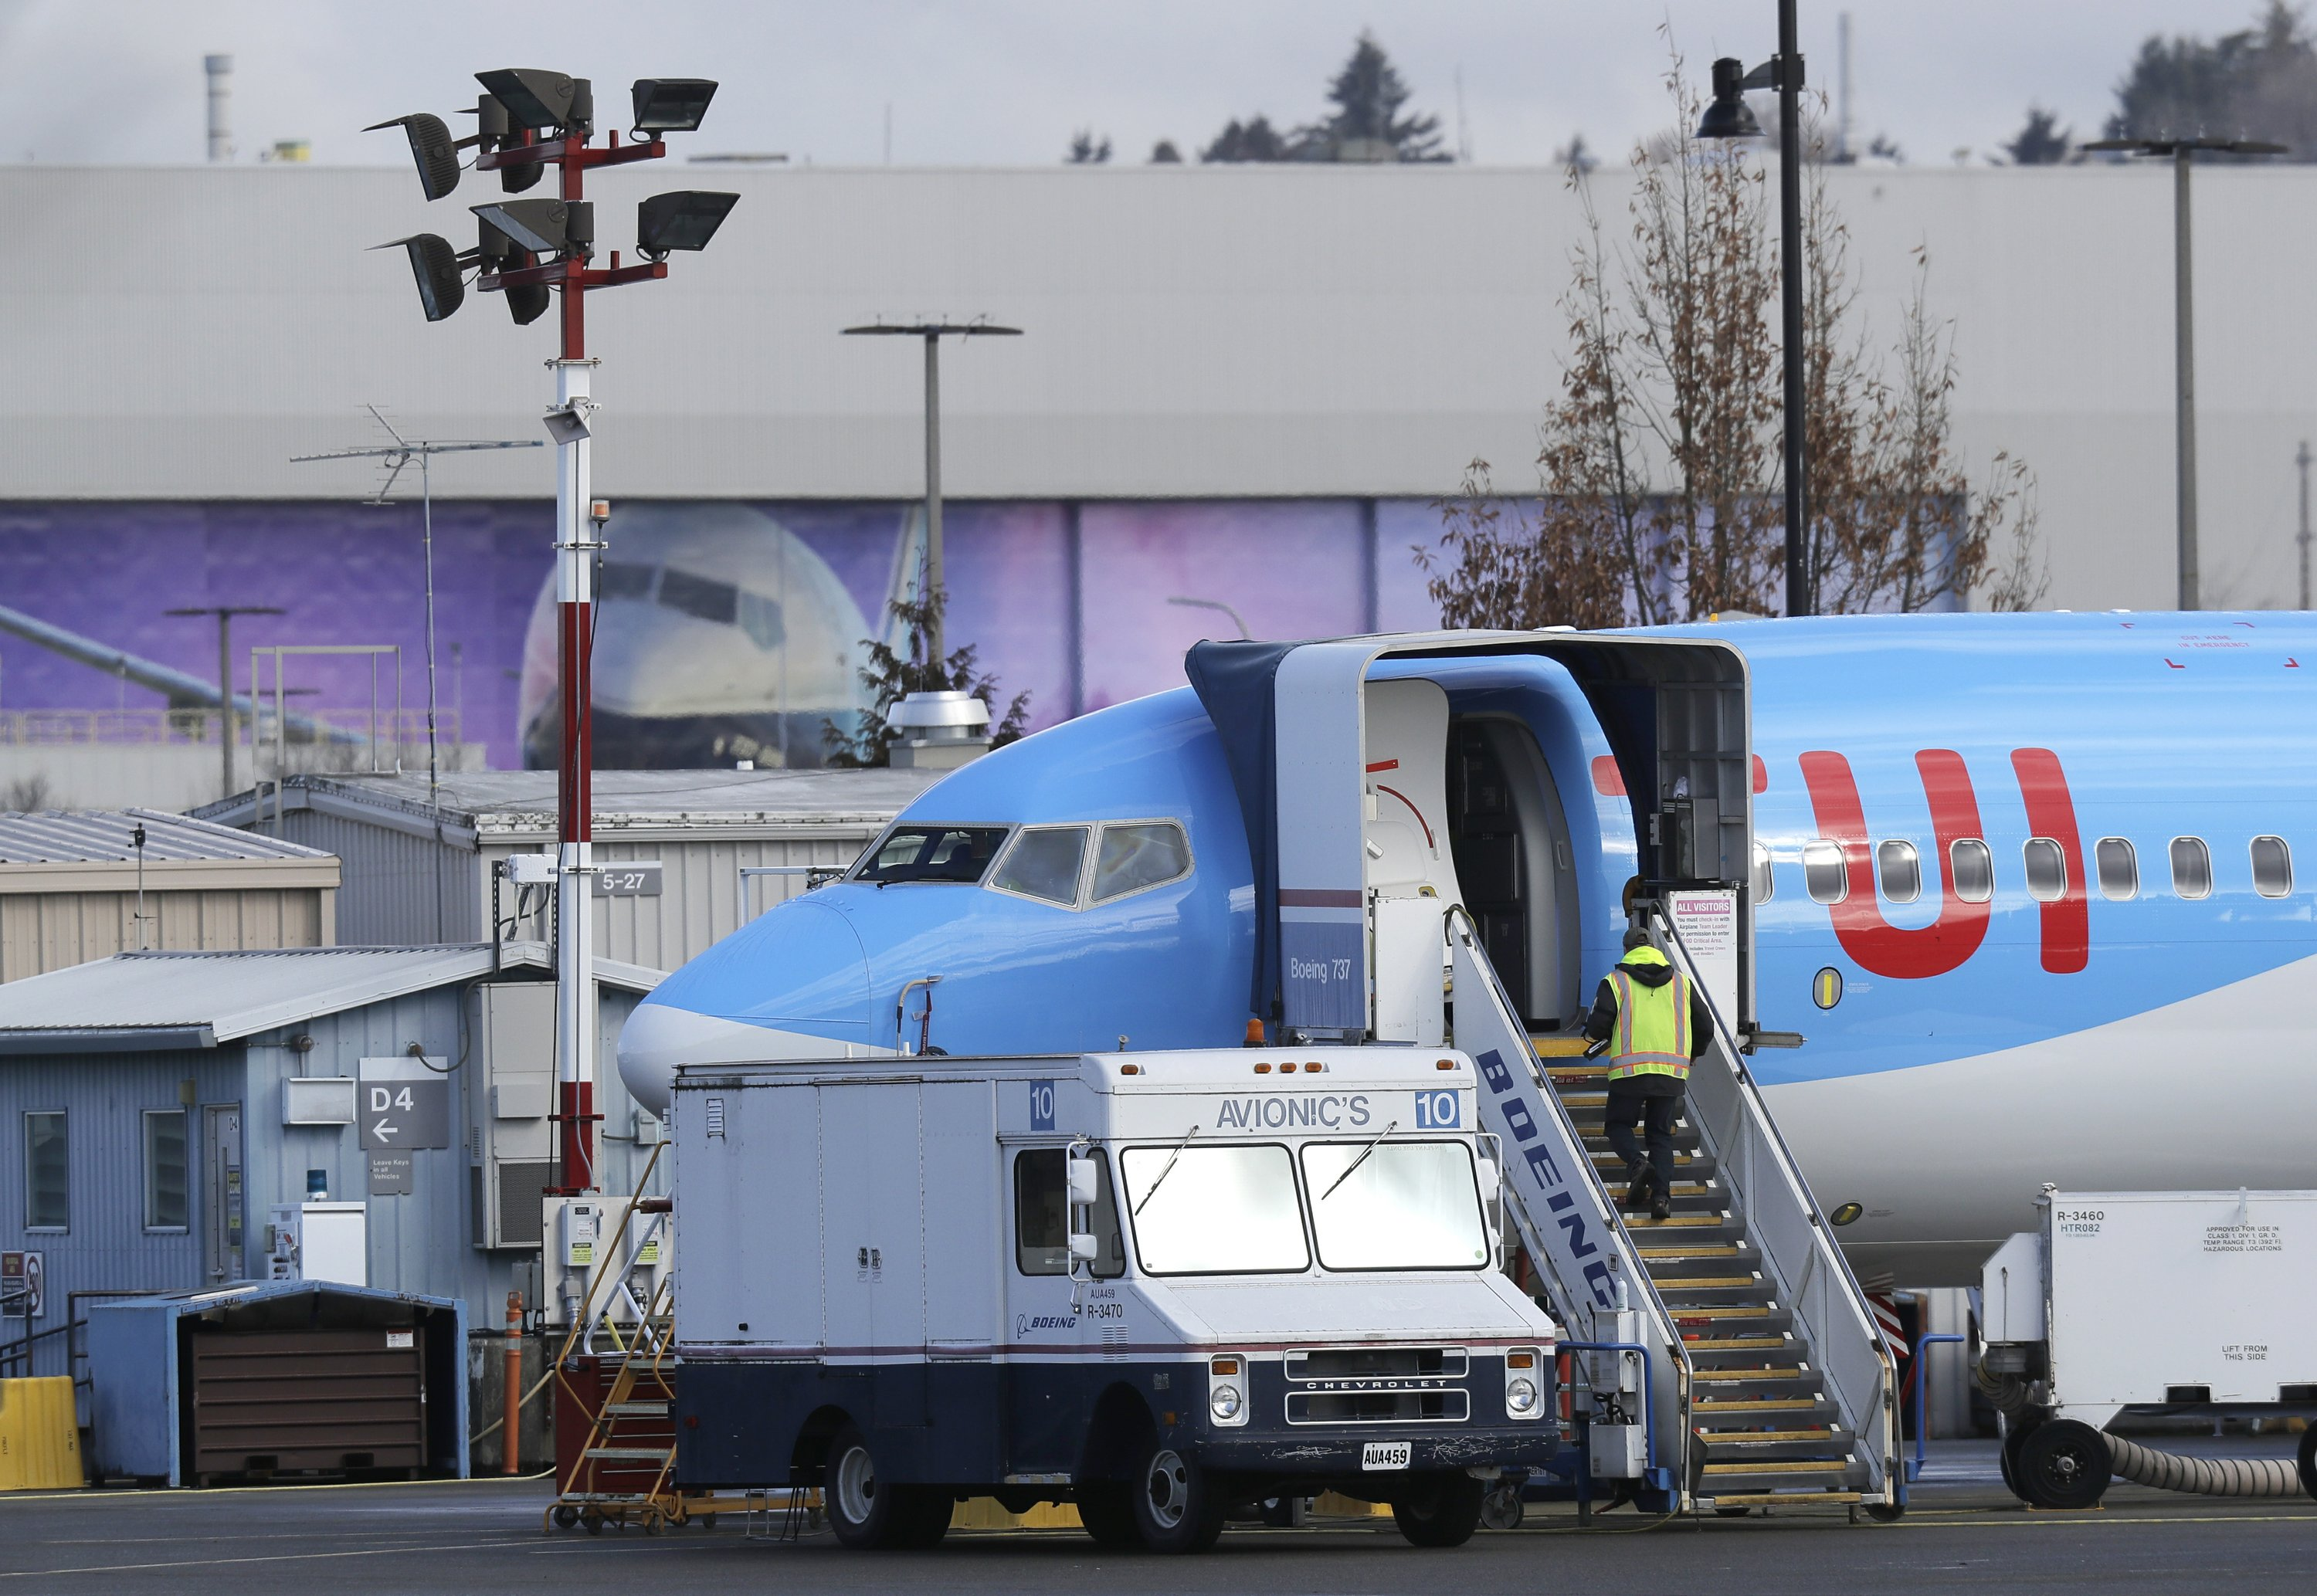 FAA relents, says it grounded 737 Max jets based on new data